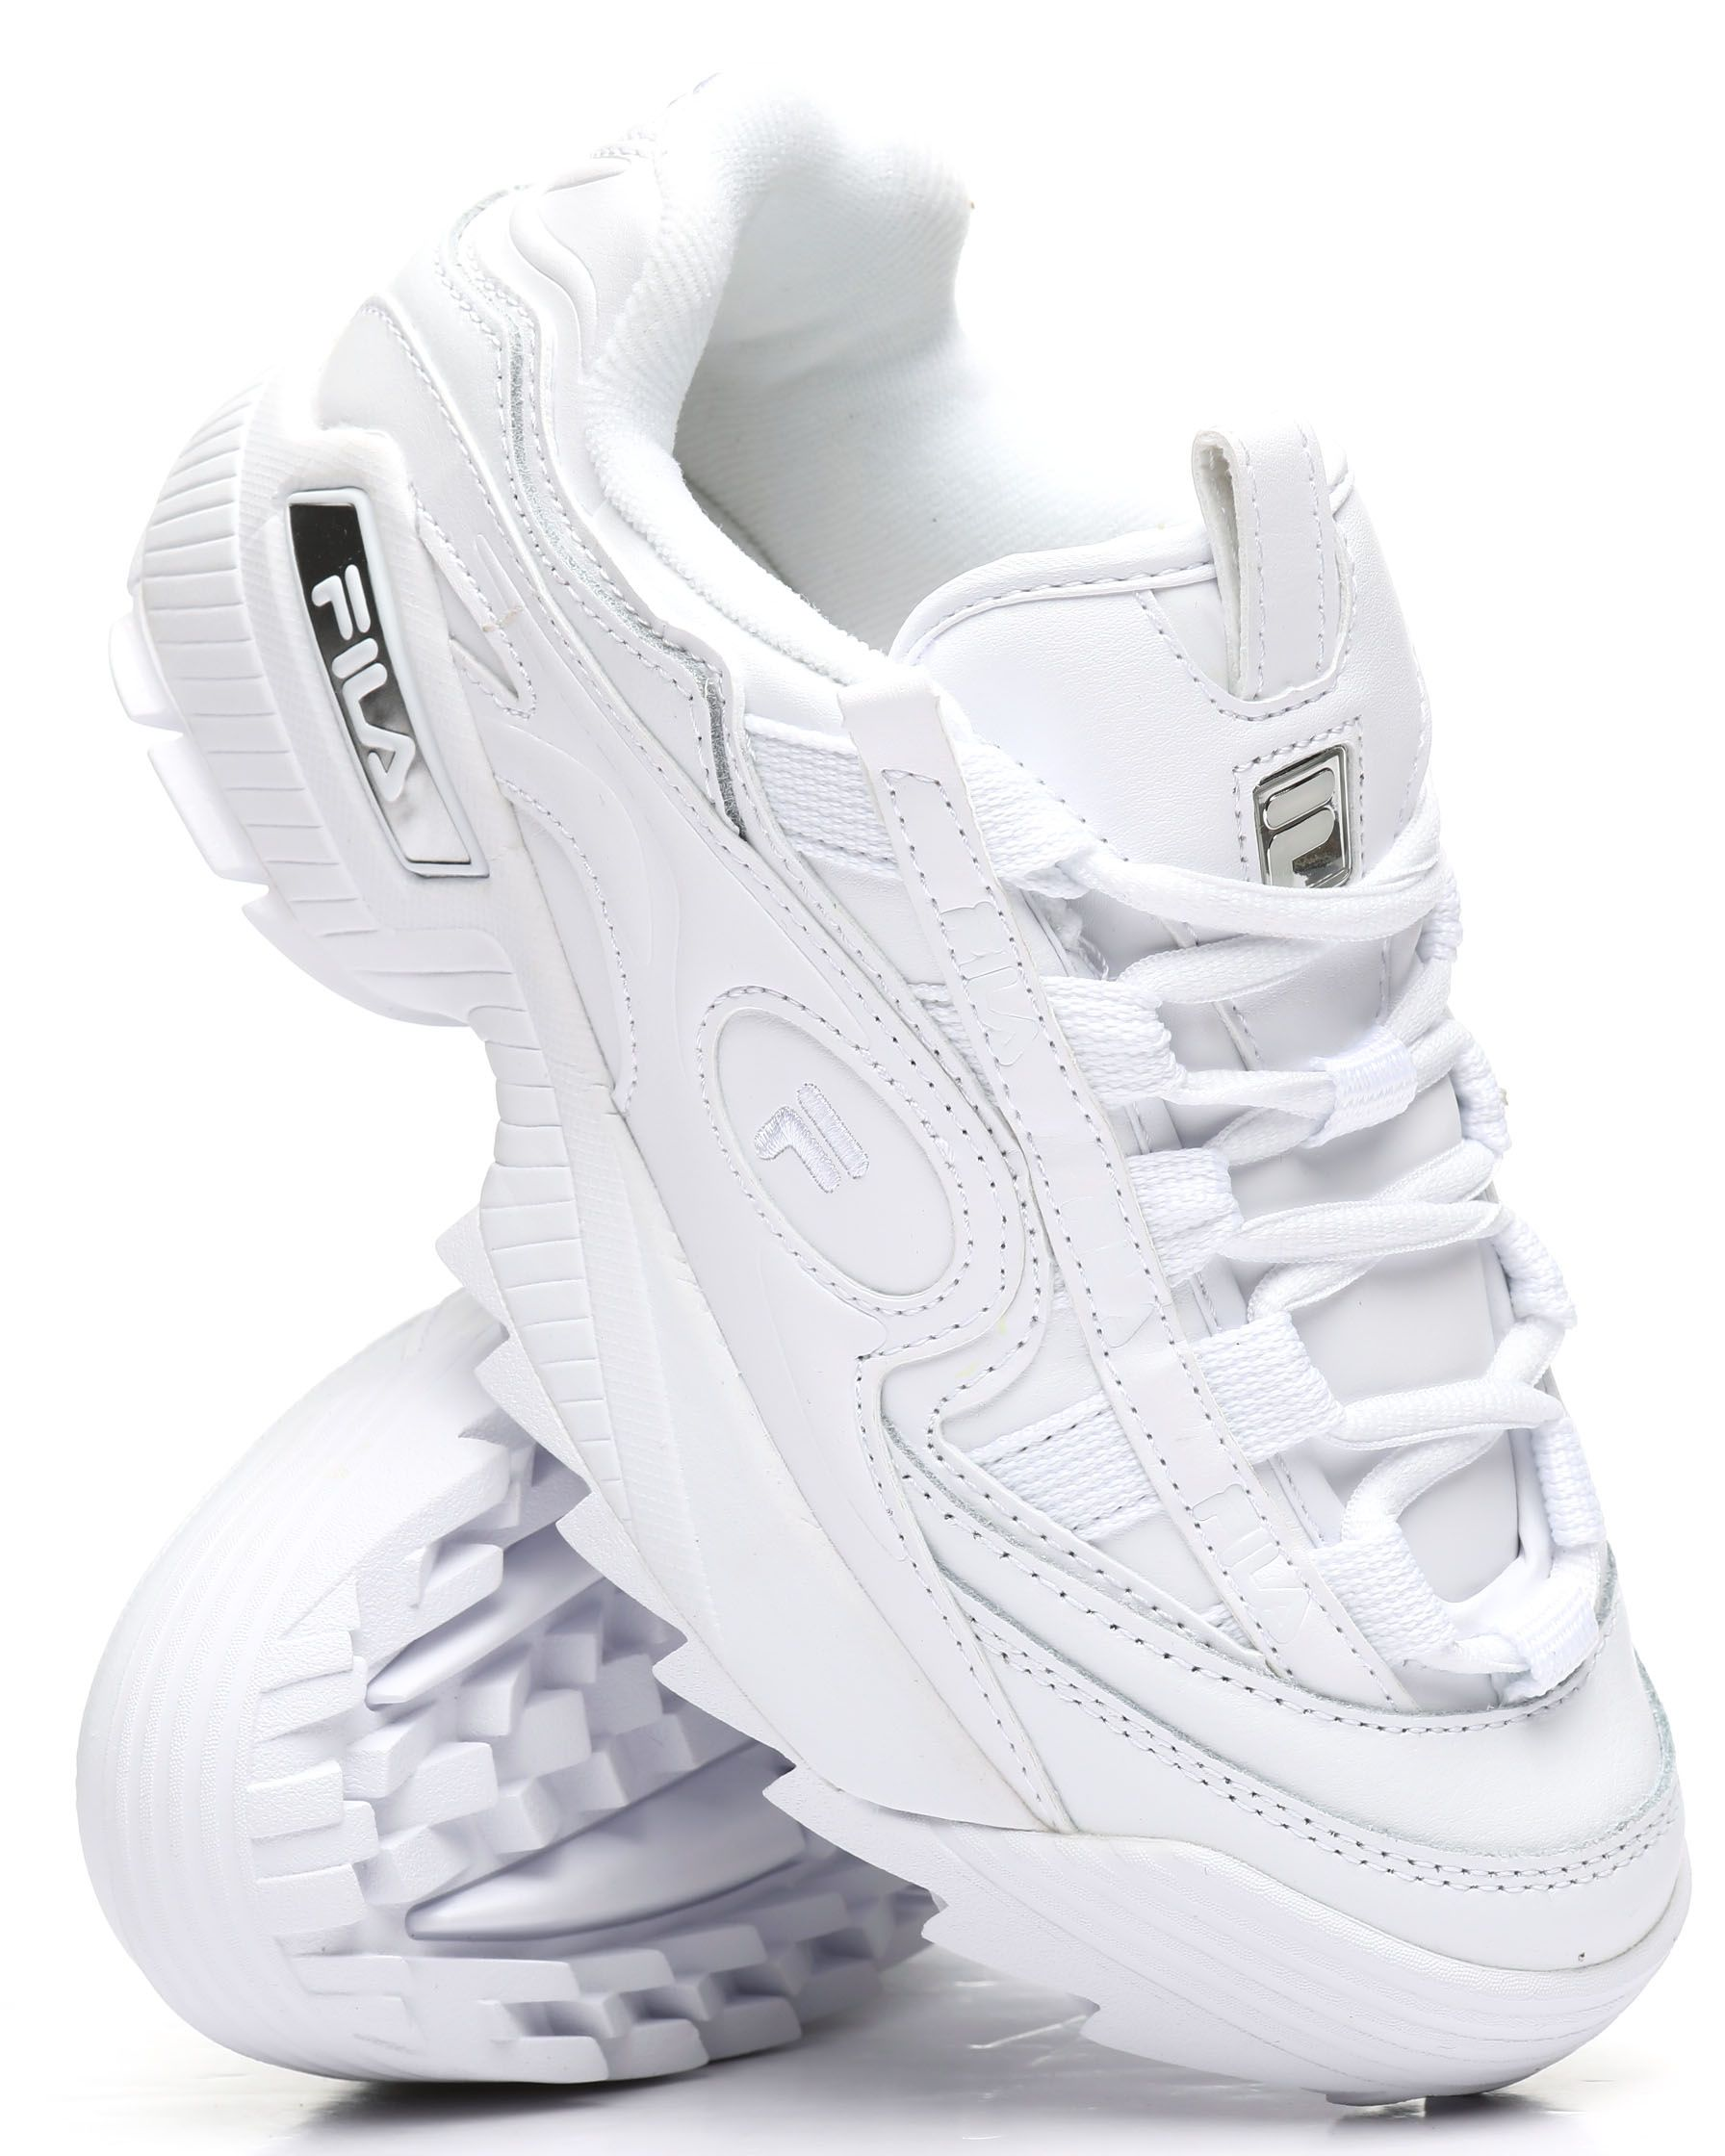 D Formation Sneakers from Fila at Sko til  Shoes for